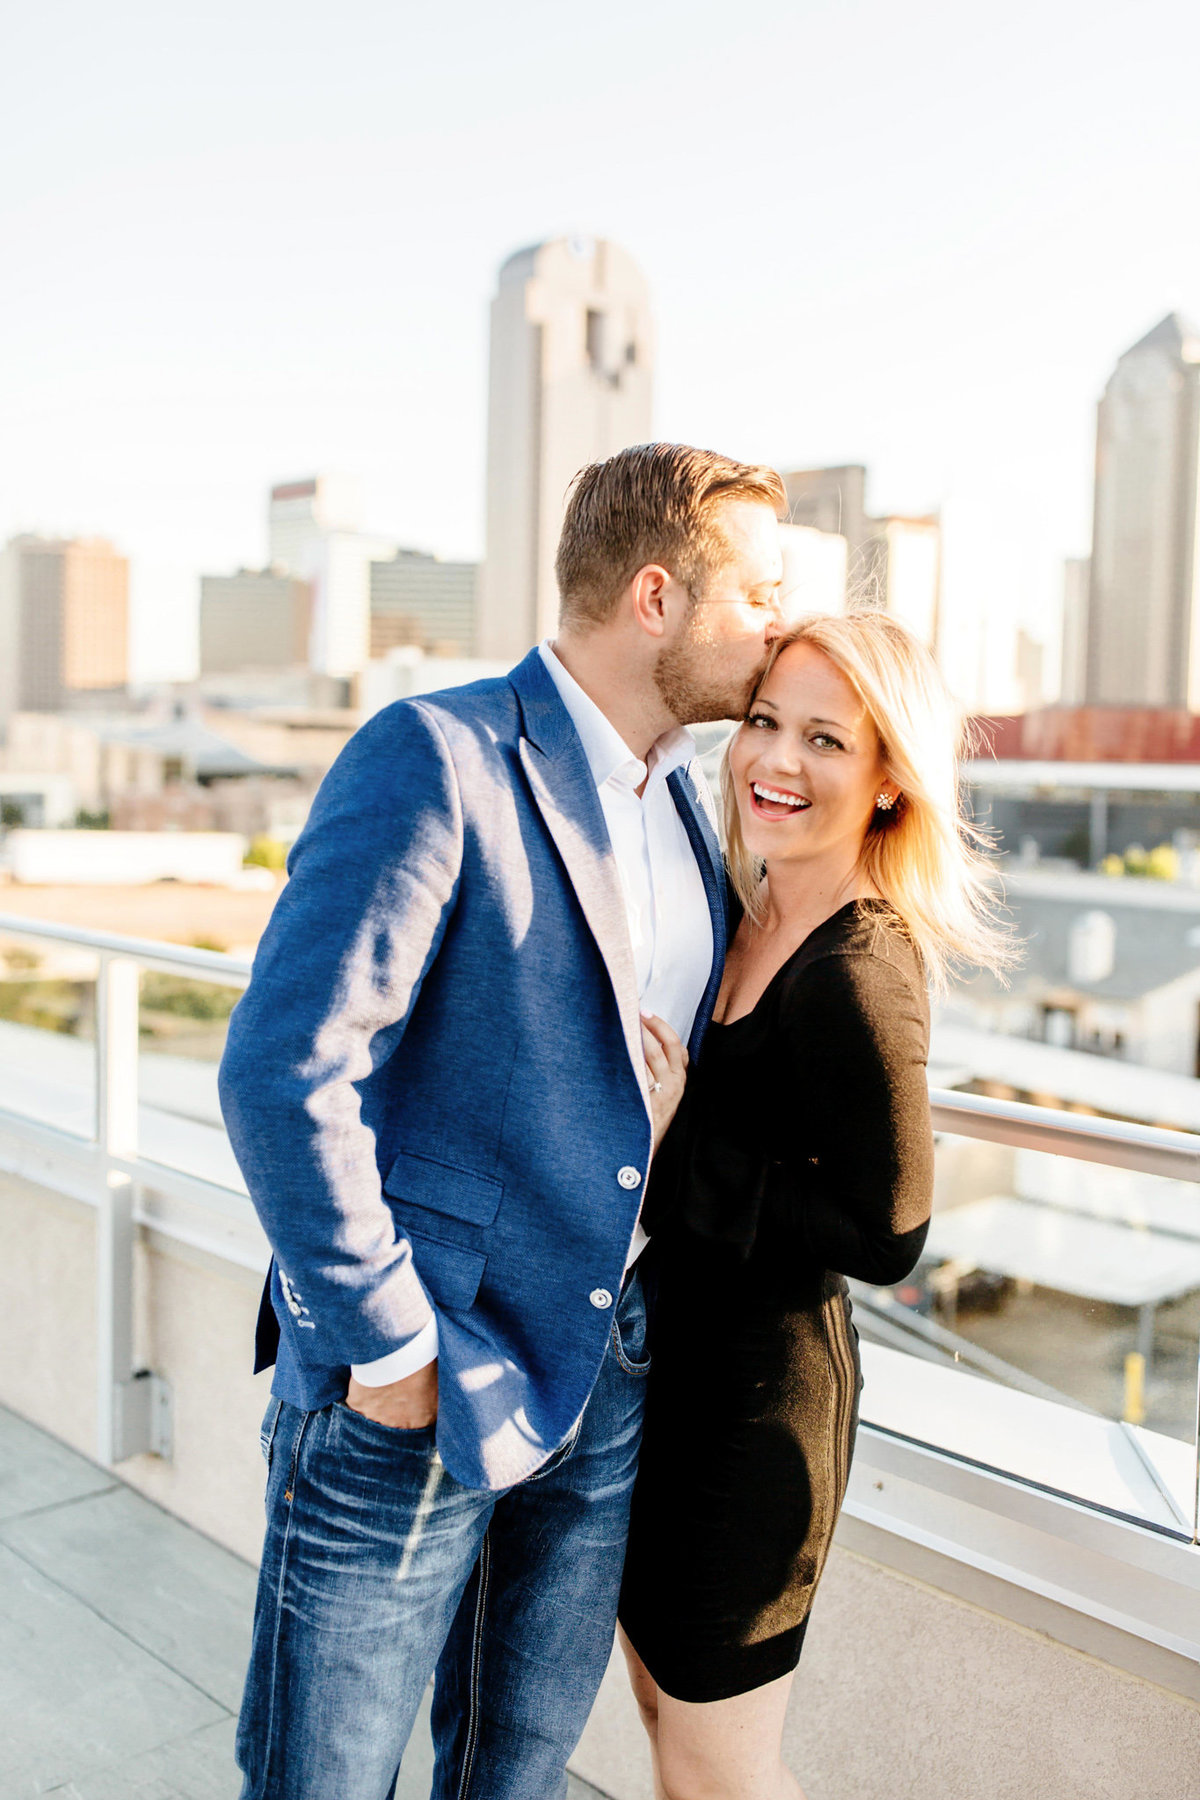 Eric & Megan - Downtown Dallas Rooftop Proposal & Engagement Session-68